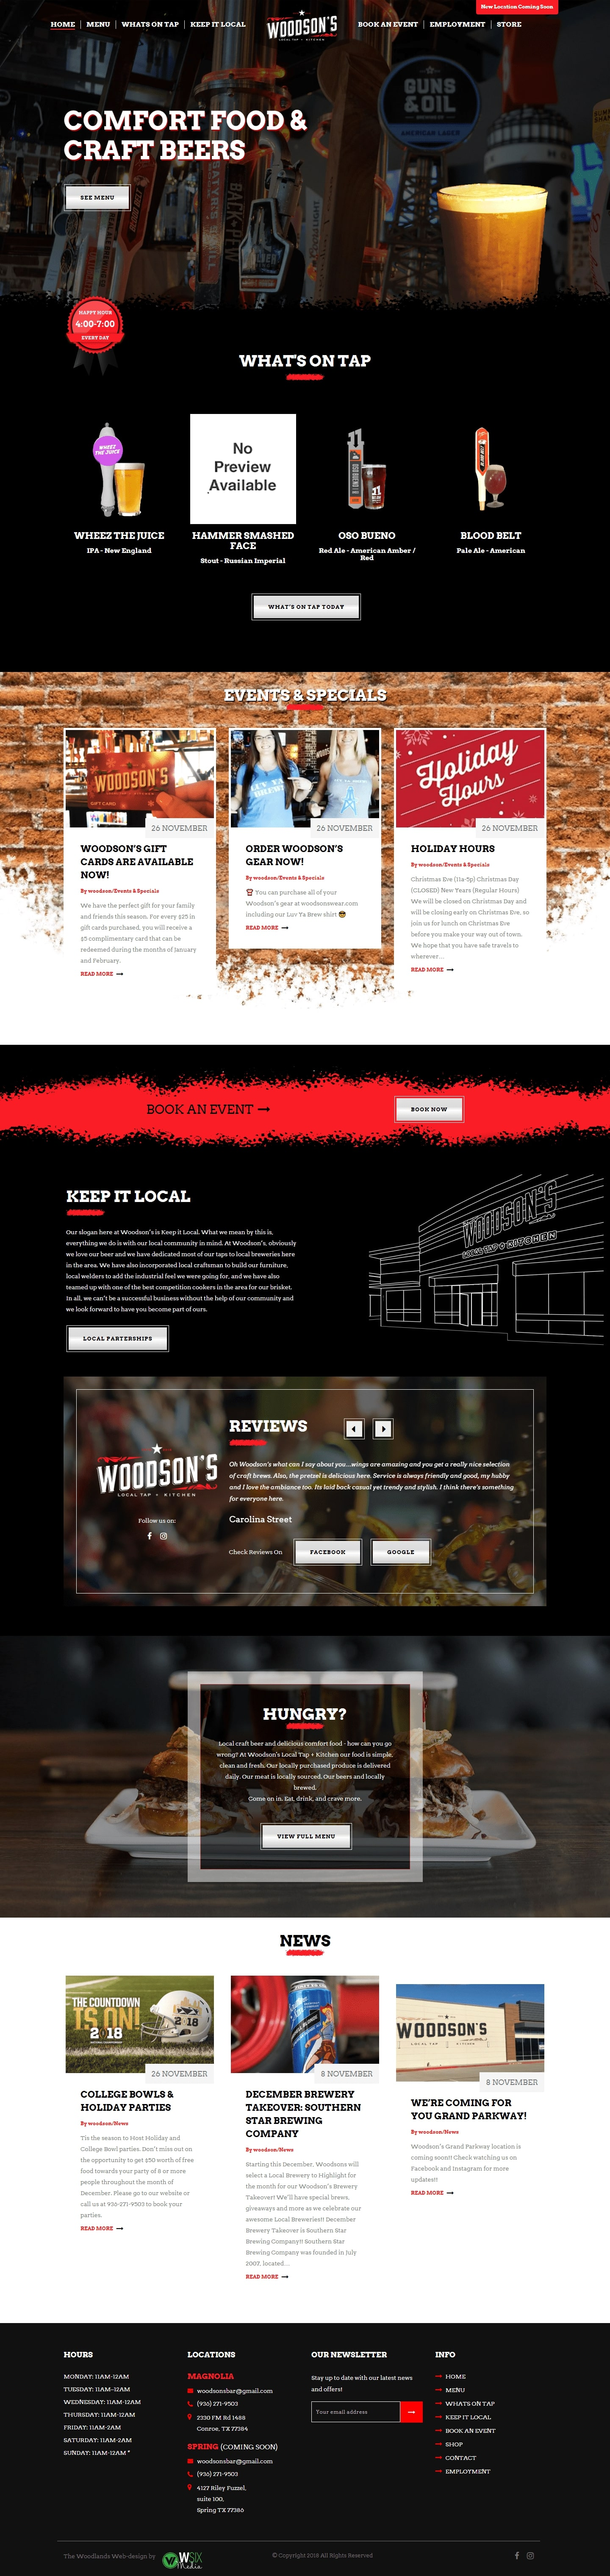 Woodsons The Woodlands Web Design Page